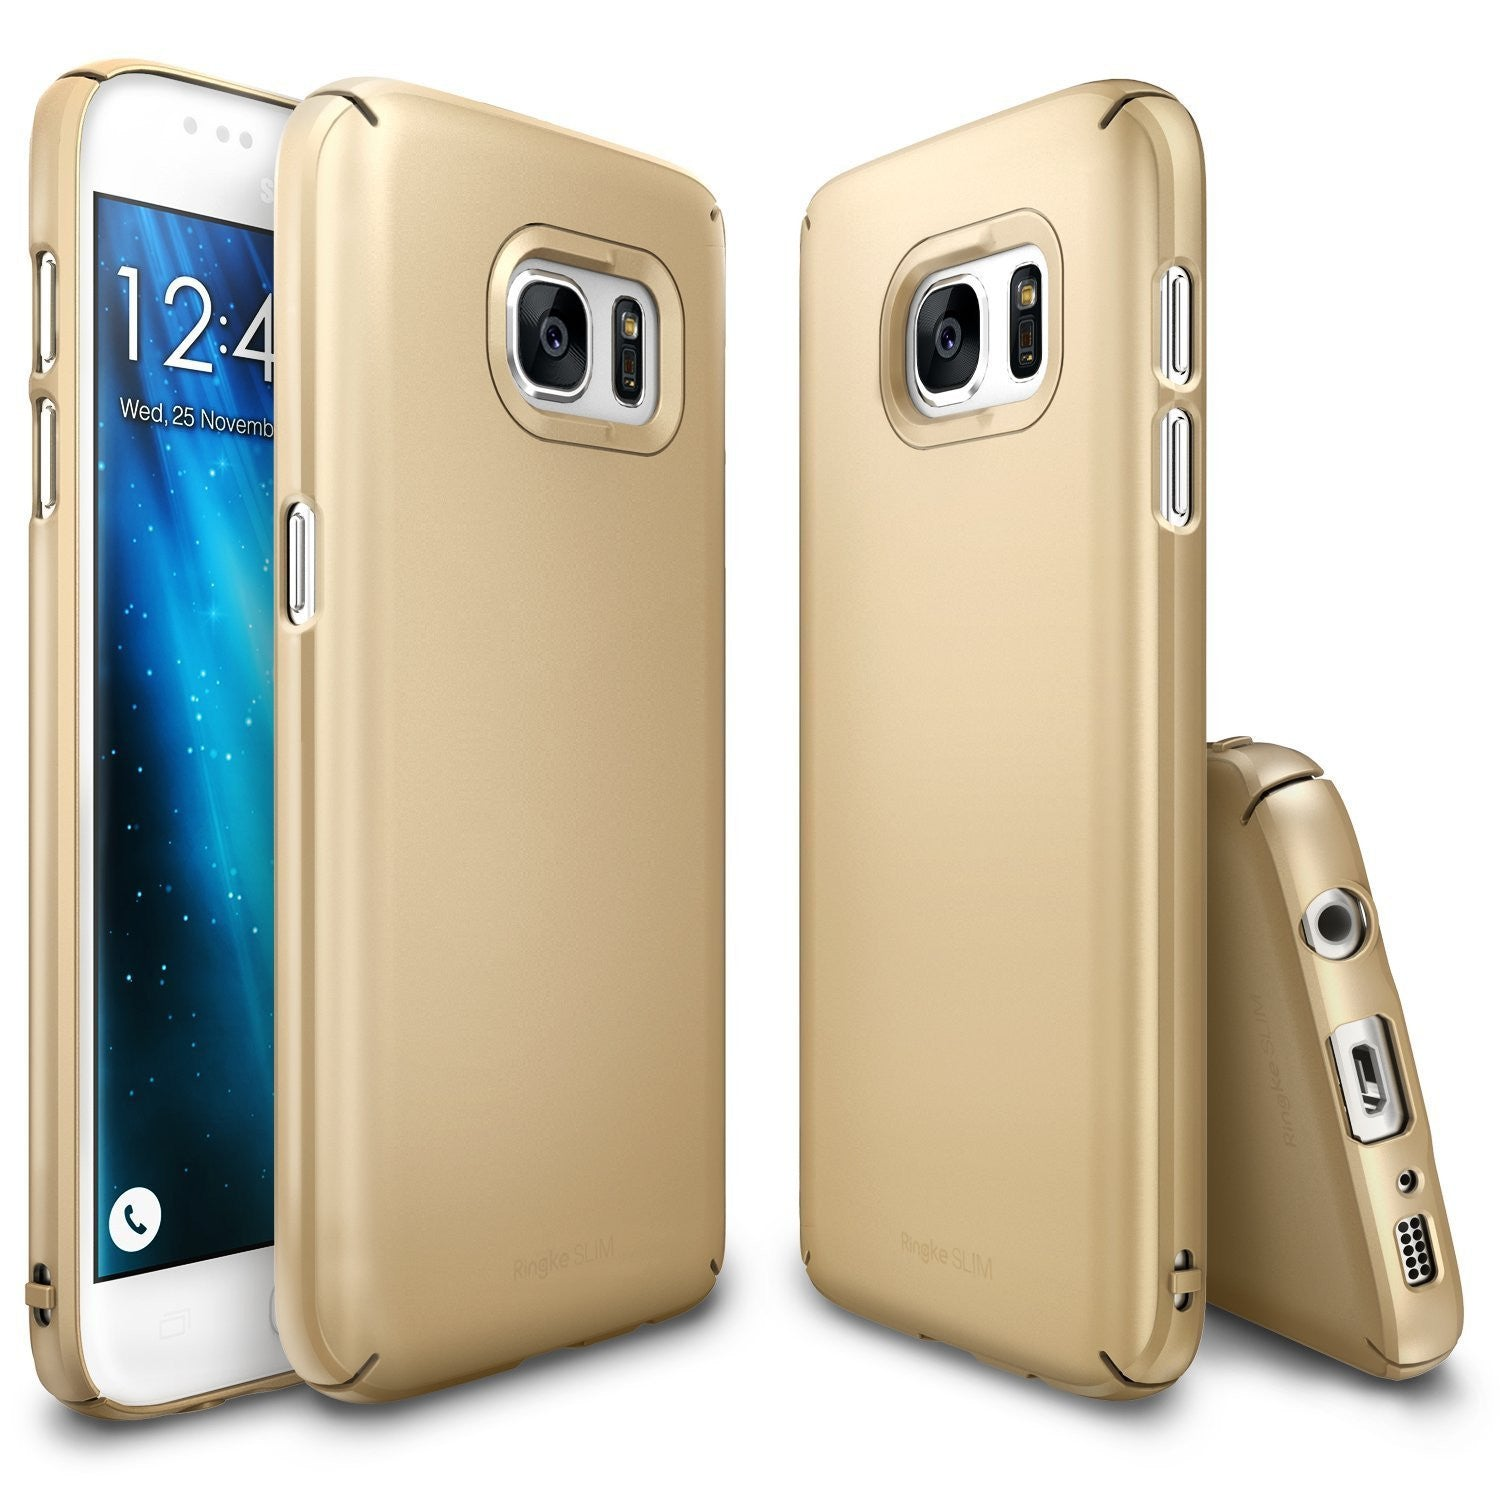 ringke slim premium pc hard cover case for galaxy s7 royal gold